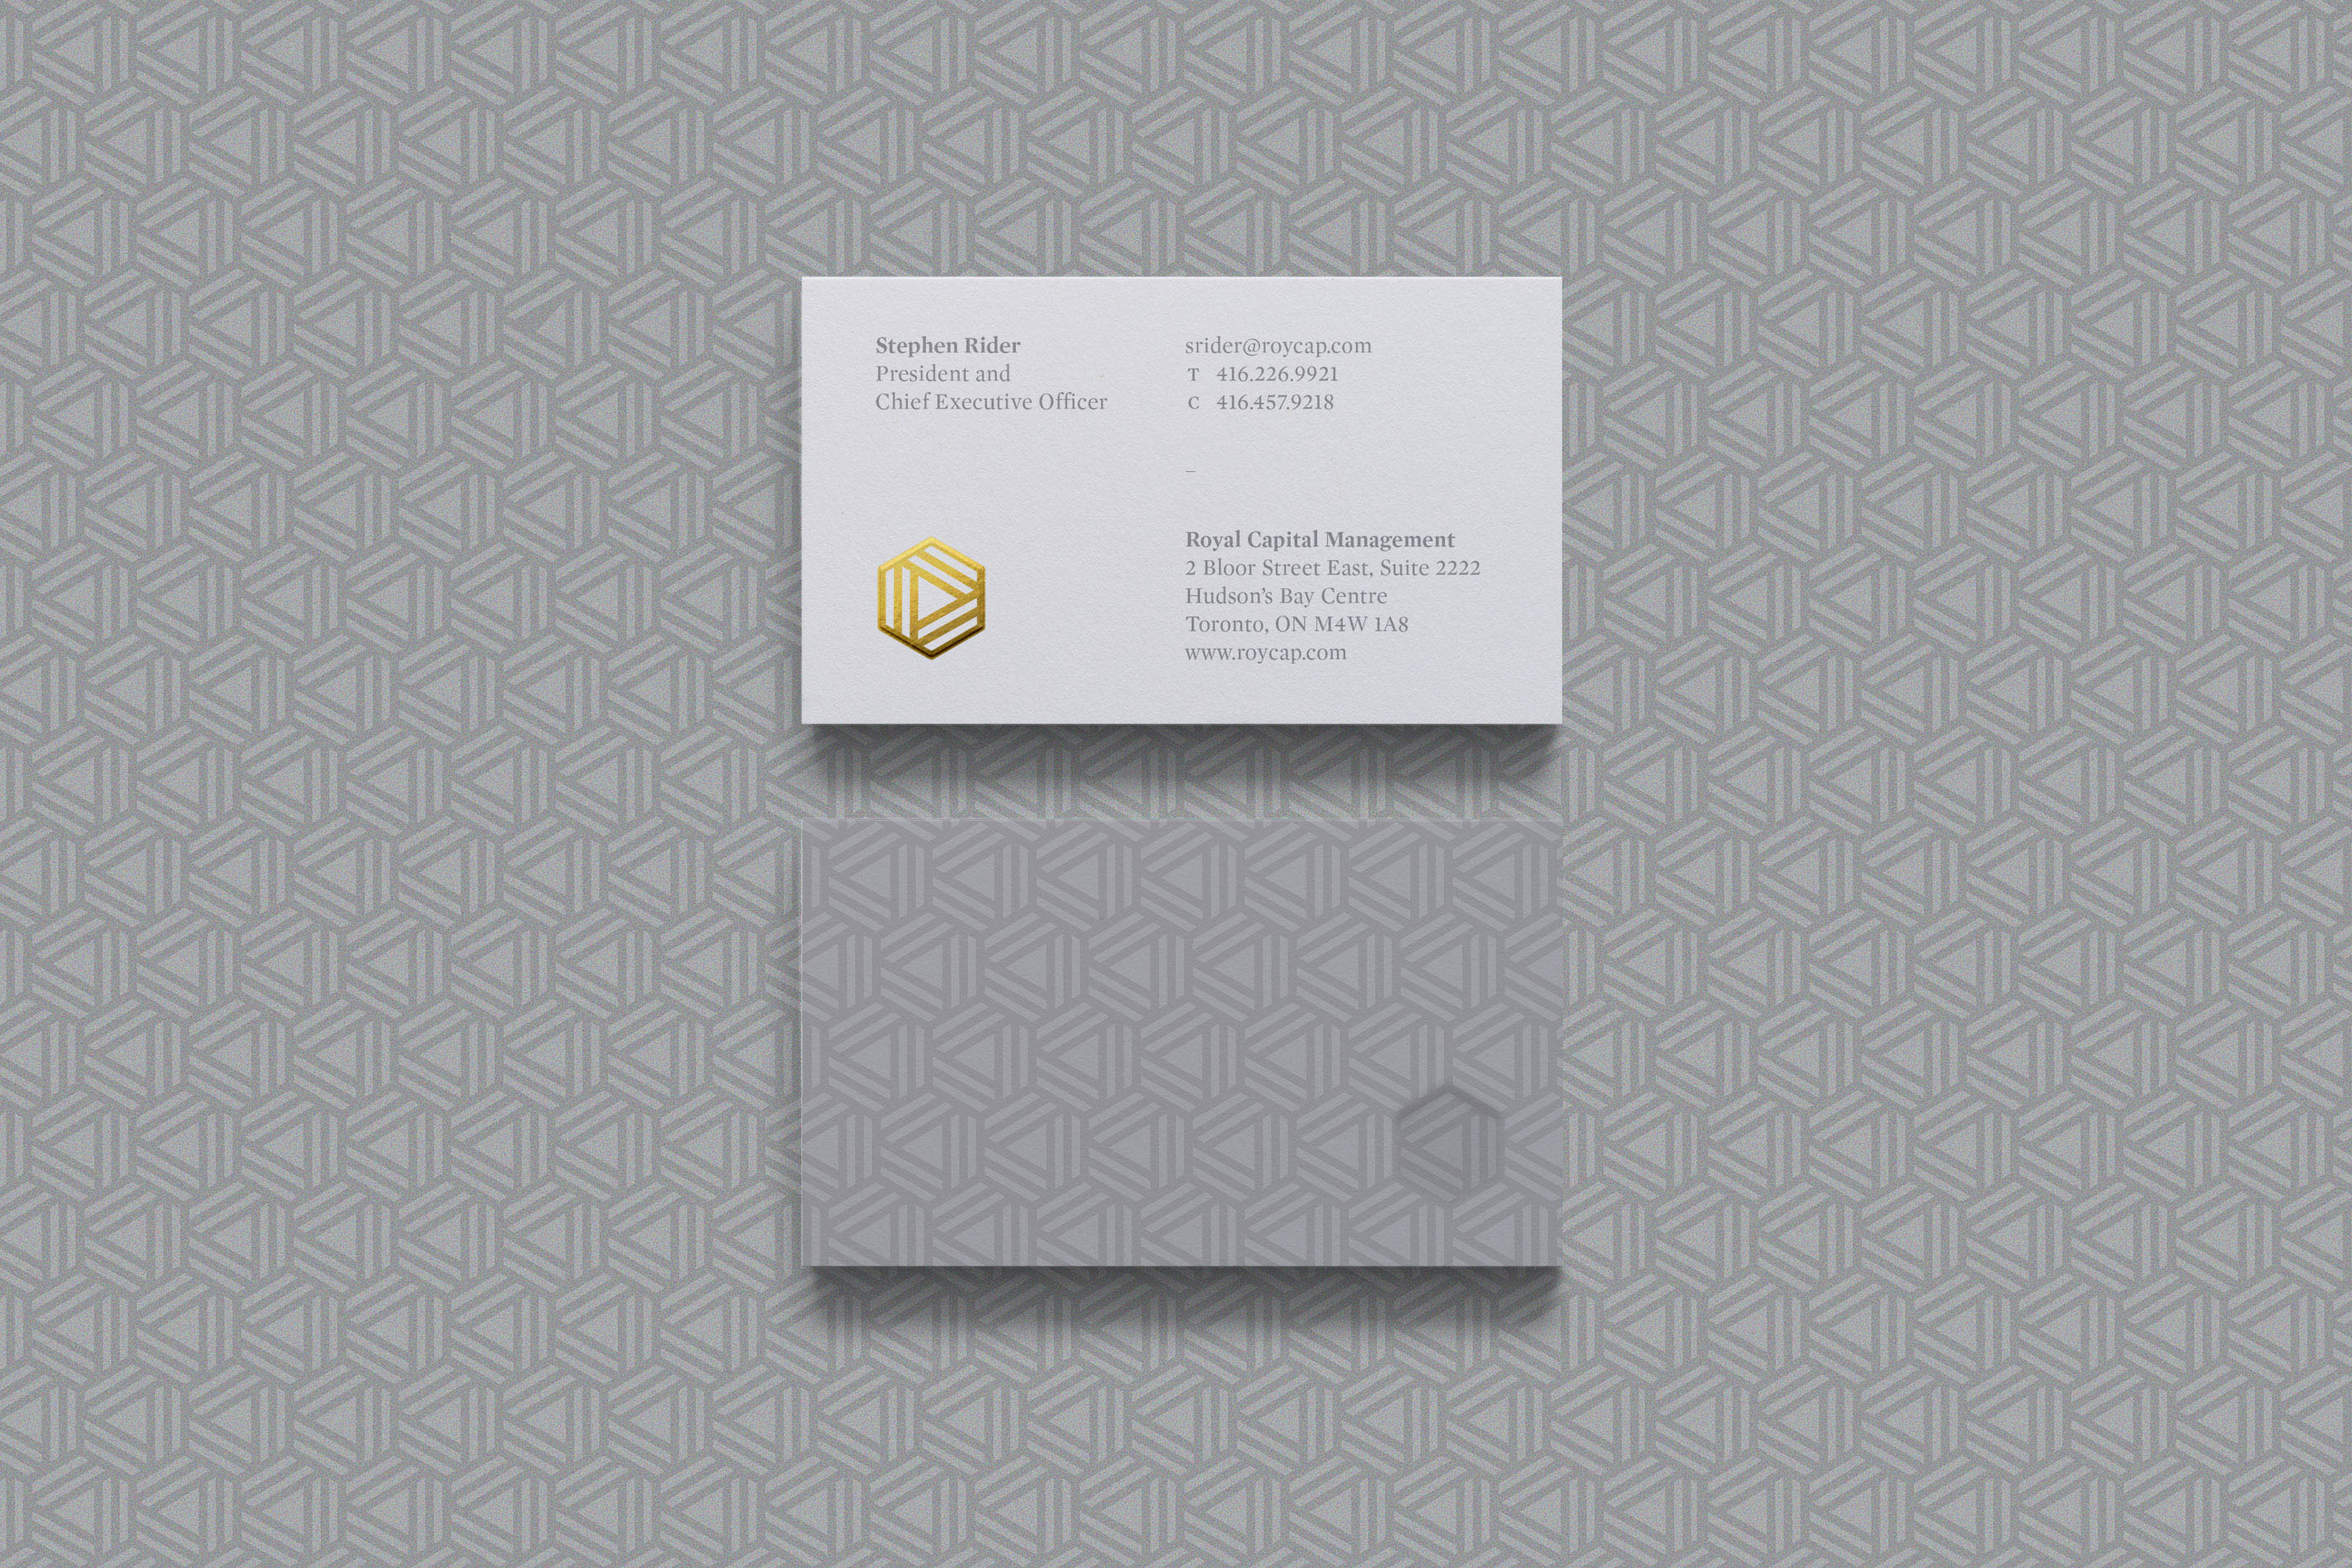 RoyCap_BusinessCard2